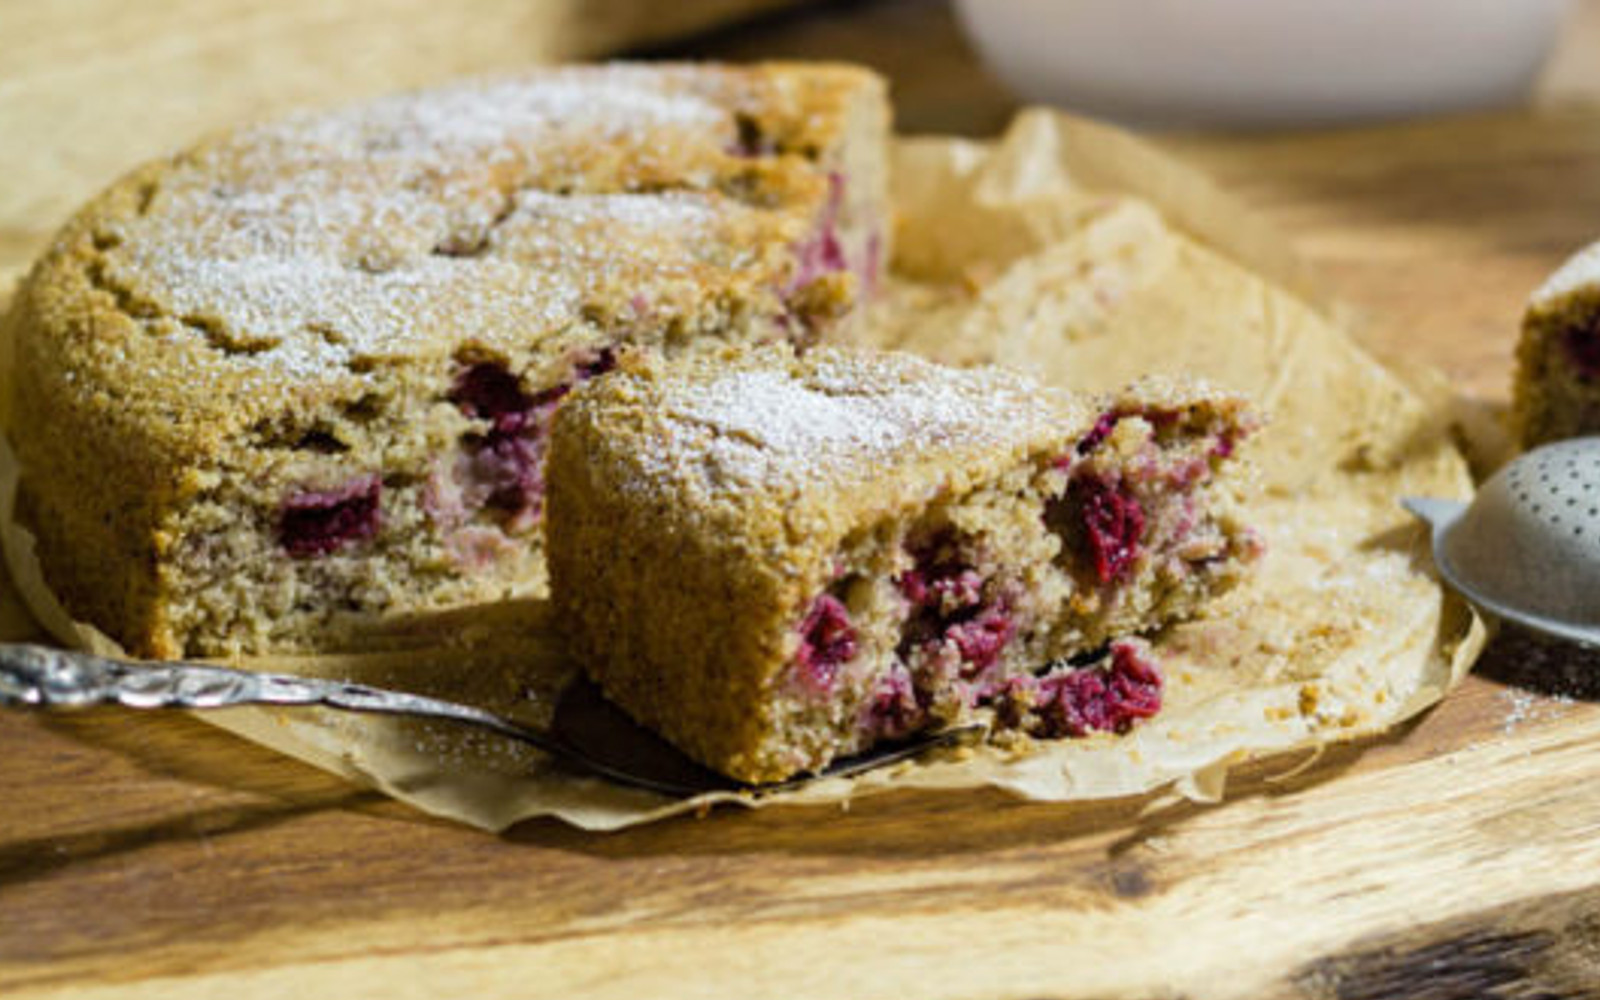 Nusskuchen: German Coffee Cake With Cherries